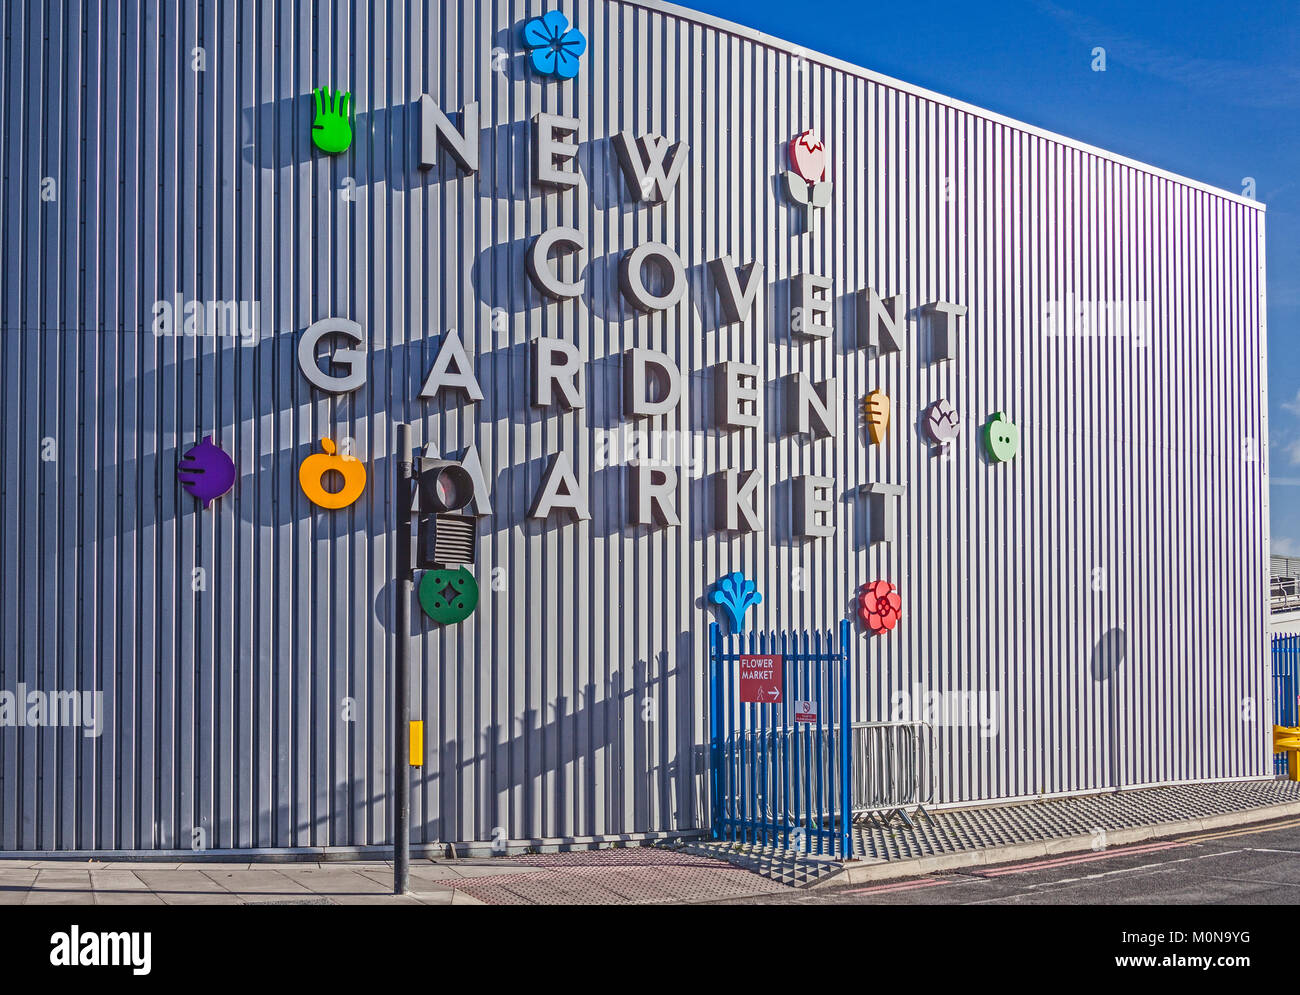 London, Battersea  The entrance to New Covent Garden Market at Nine Elms off Nine Elms Lane - Stock Image